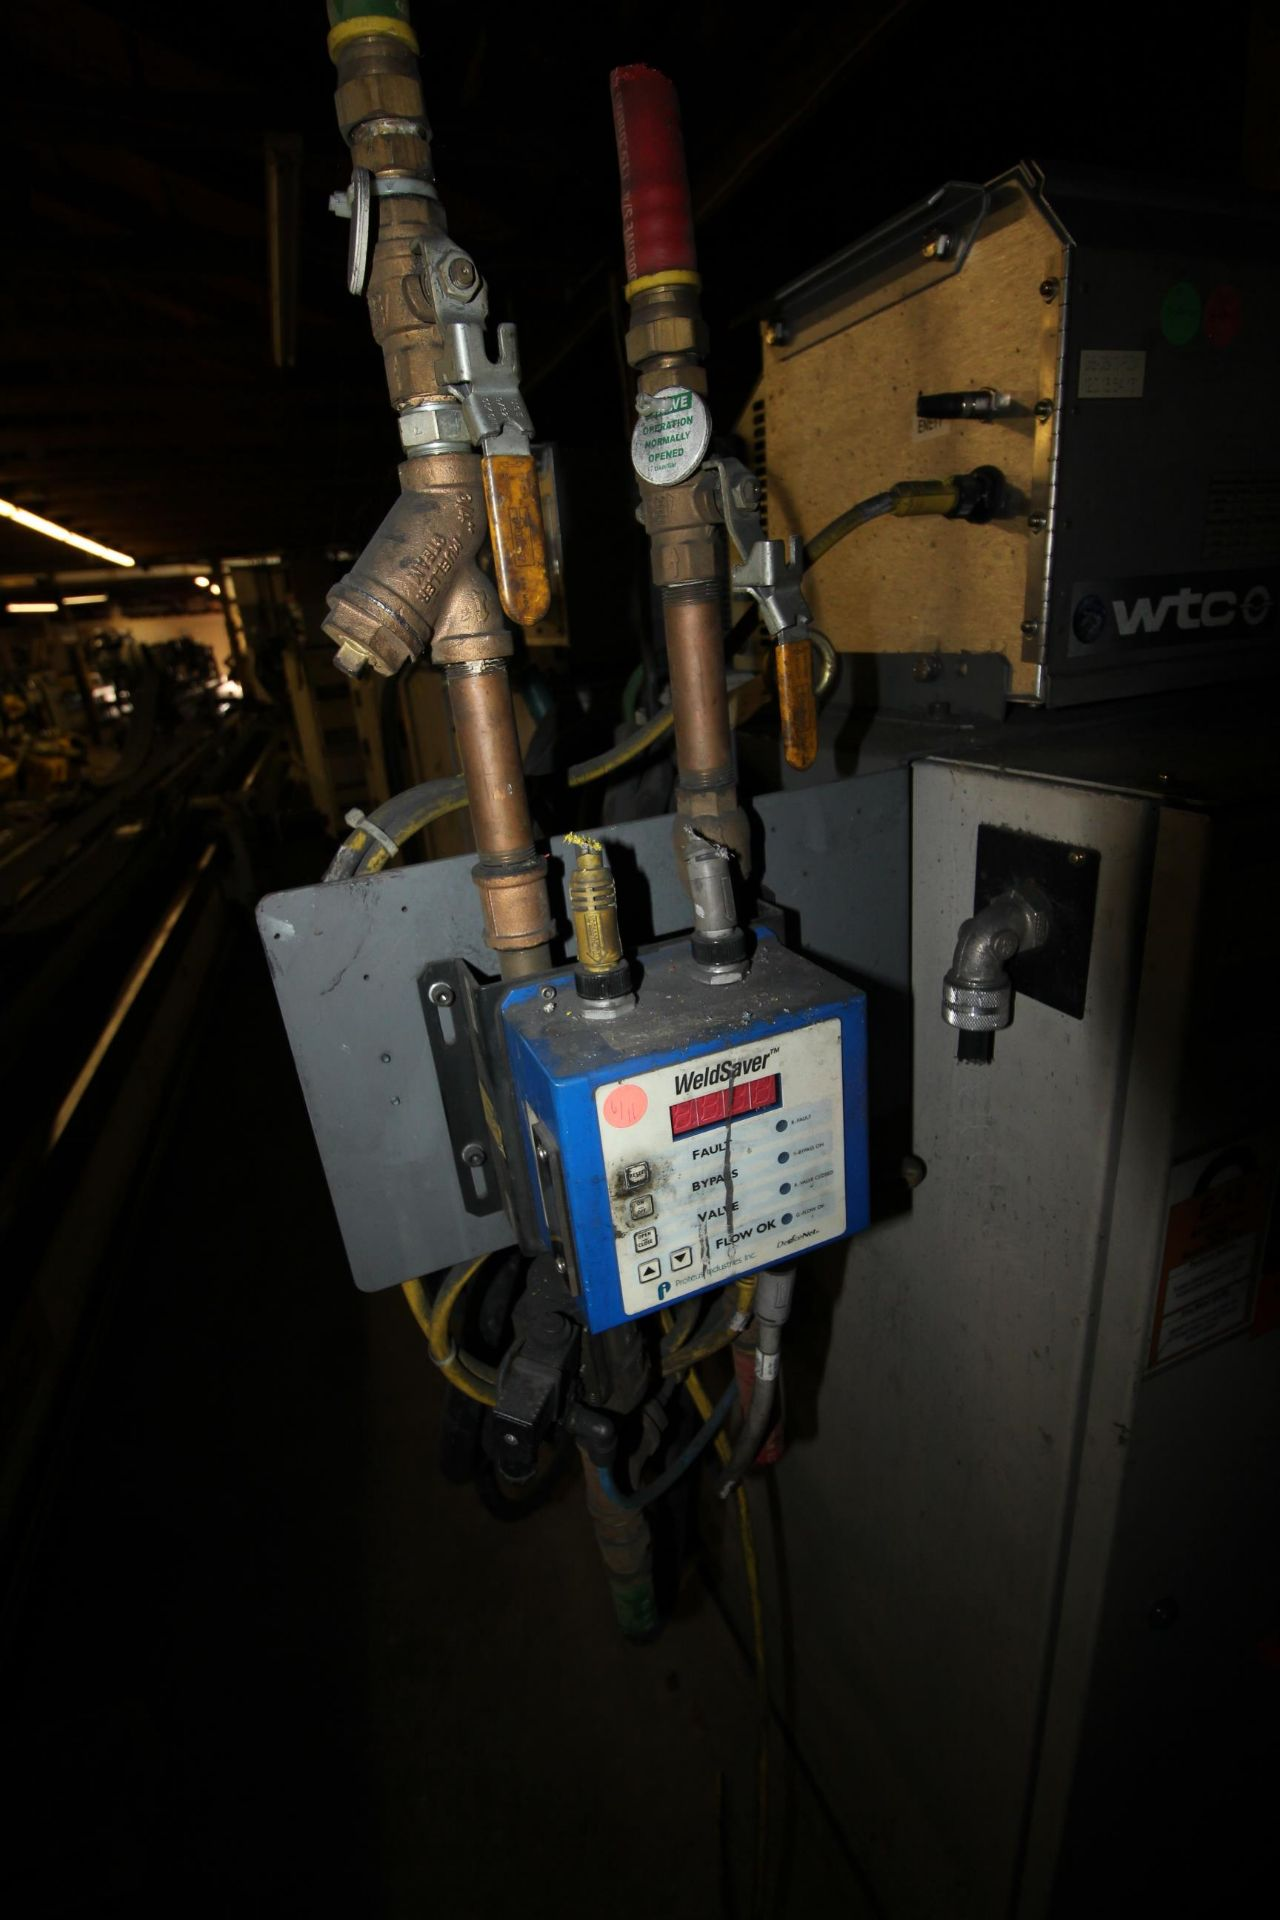 MOTOMAN ROBOT ES200N, NX100 CONTROL, SN S5M257-1-1, YEAR 12/05, CABLES AND TEACH PENDANT - Image 8 of 9